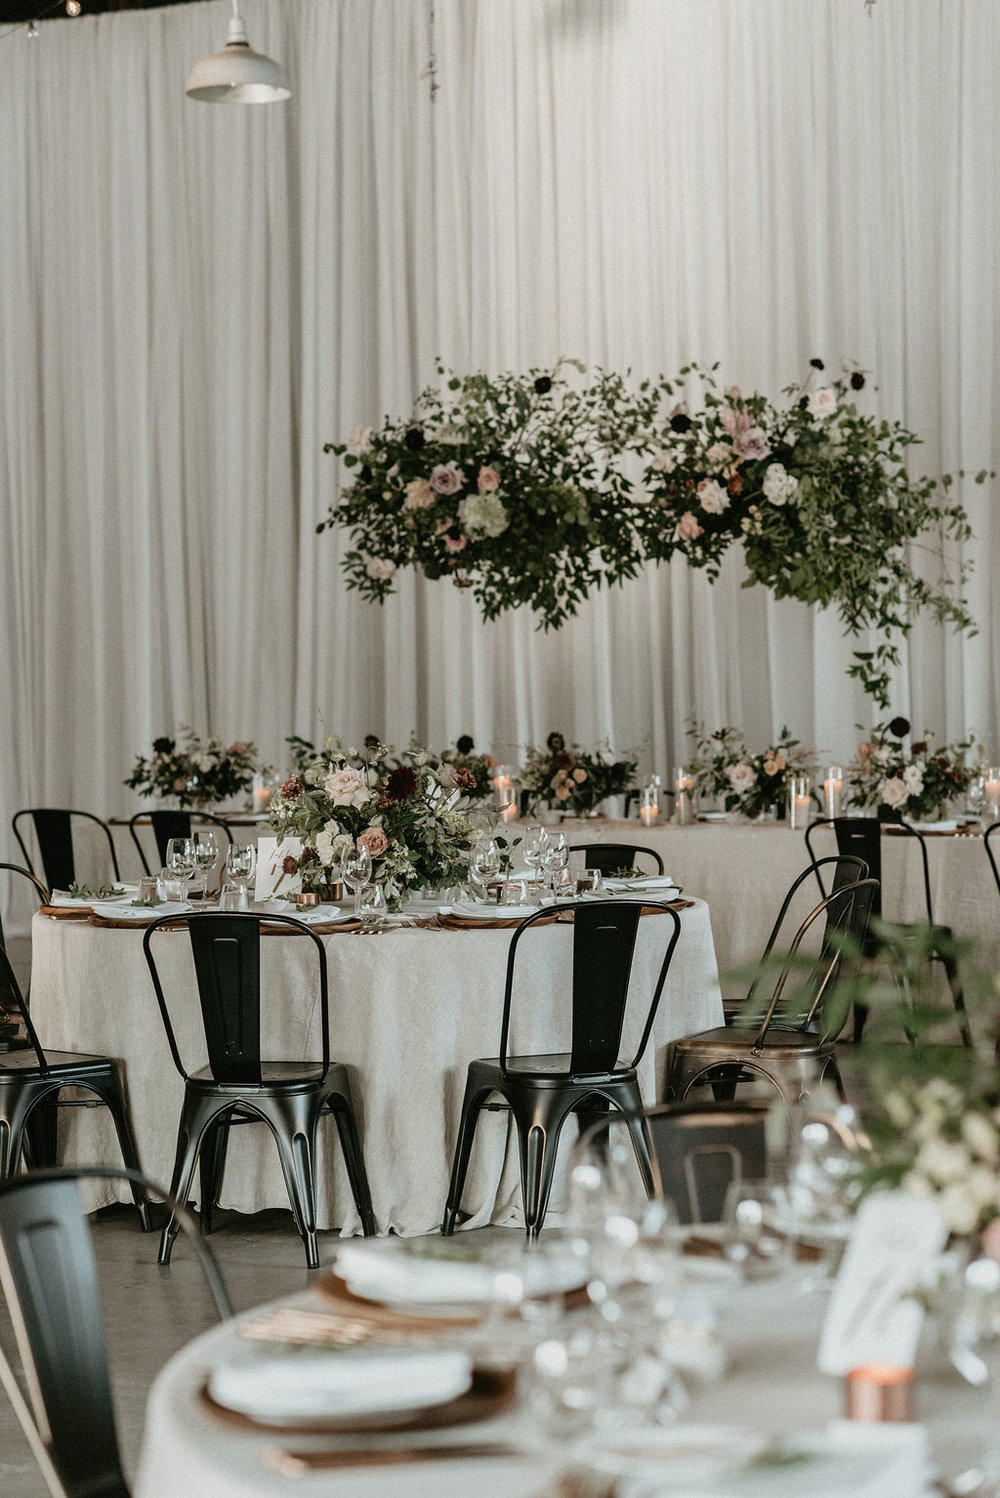 CHANTAL + GAETAN INDUSTRIAL CHIC WEDDING